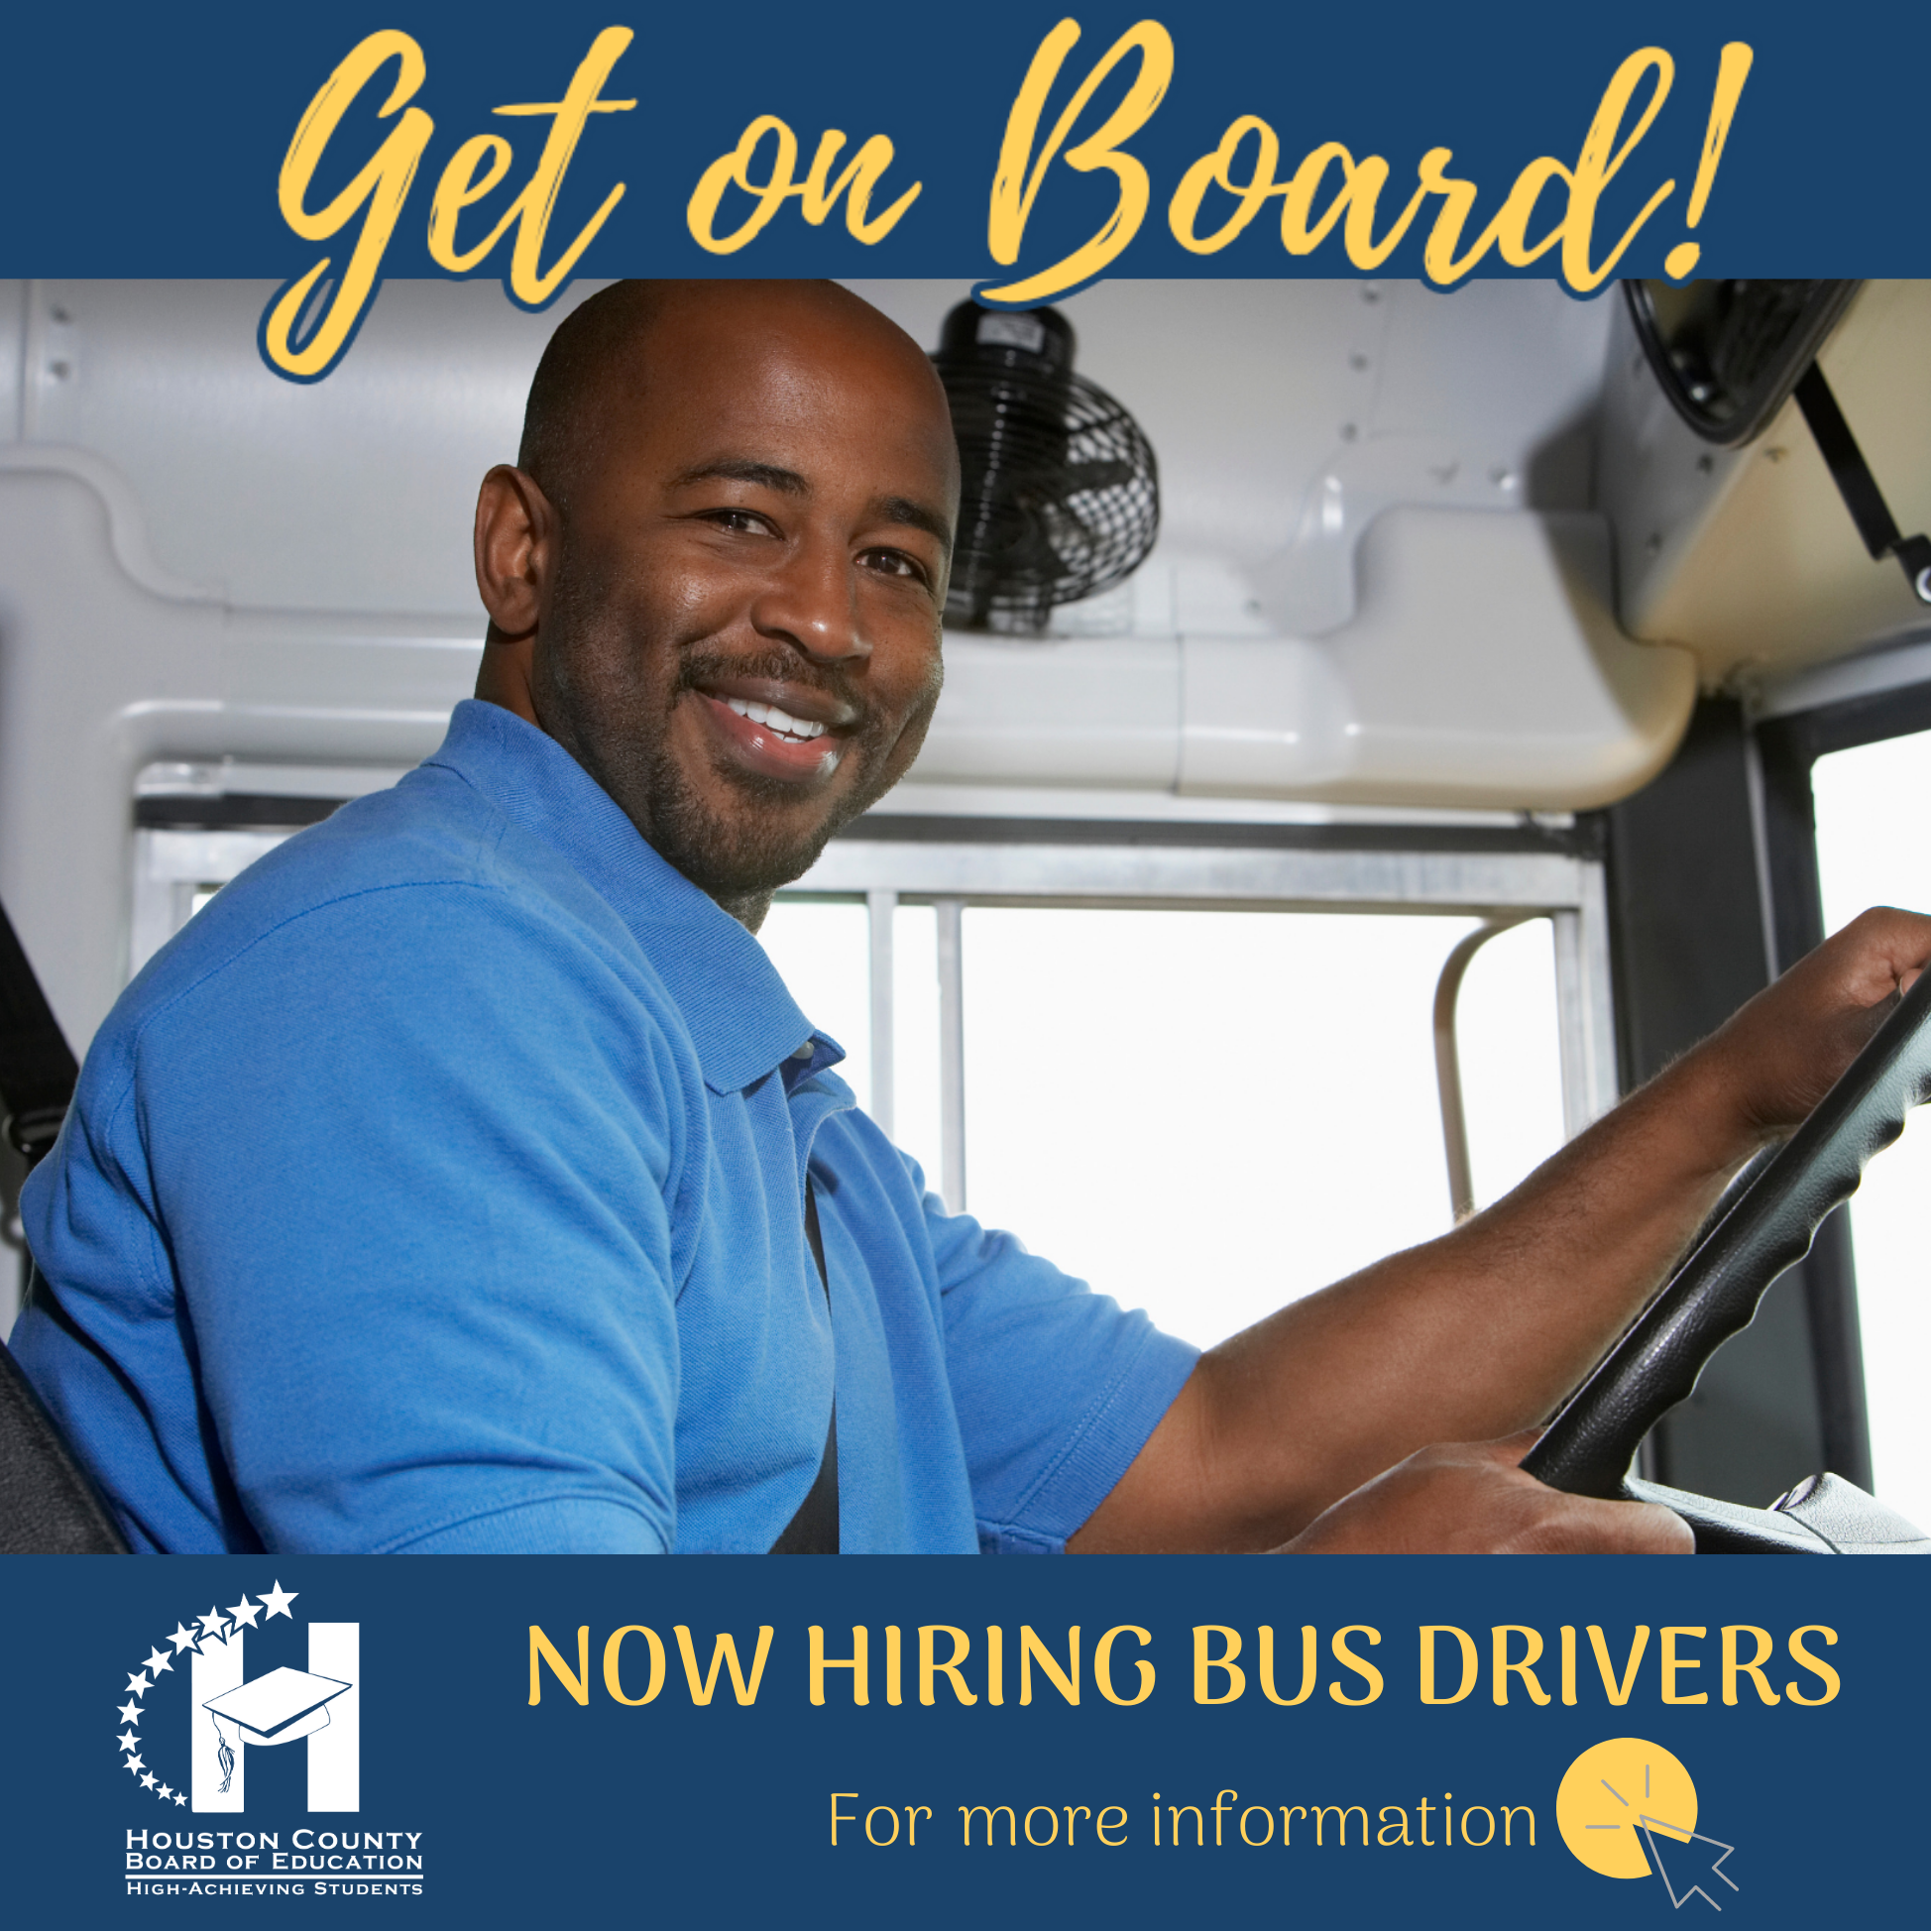 Get on Board- Transportation Job Openings and Information